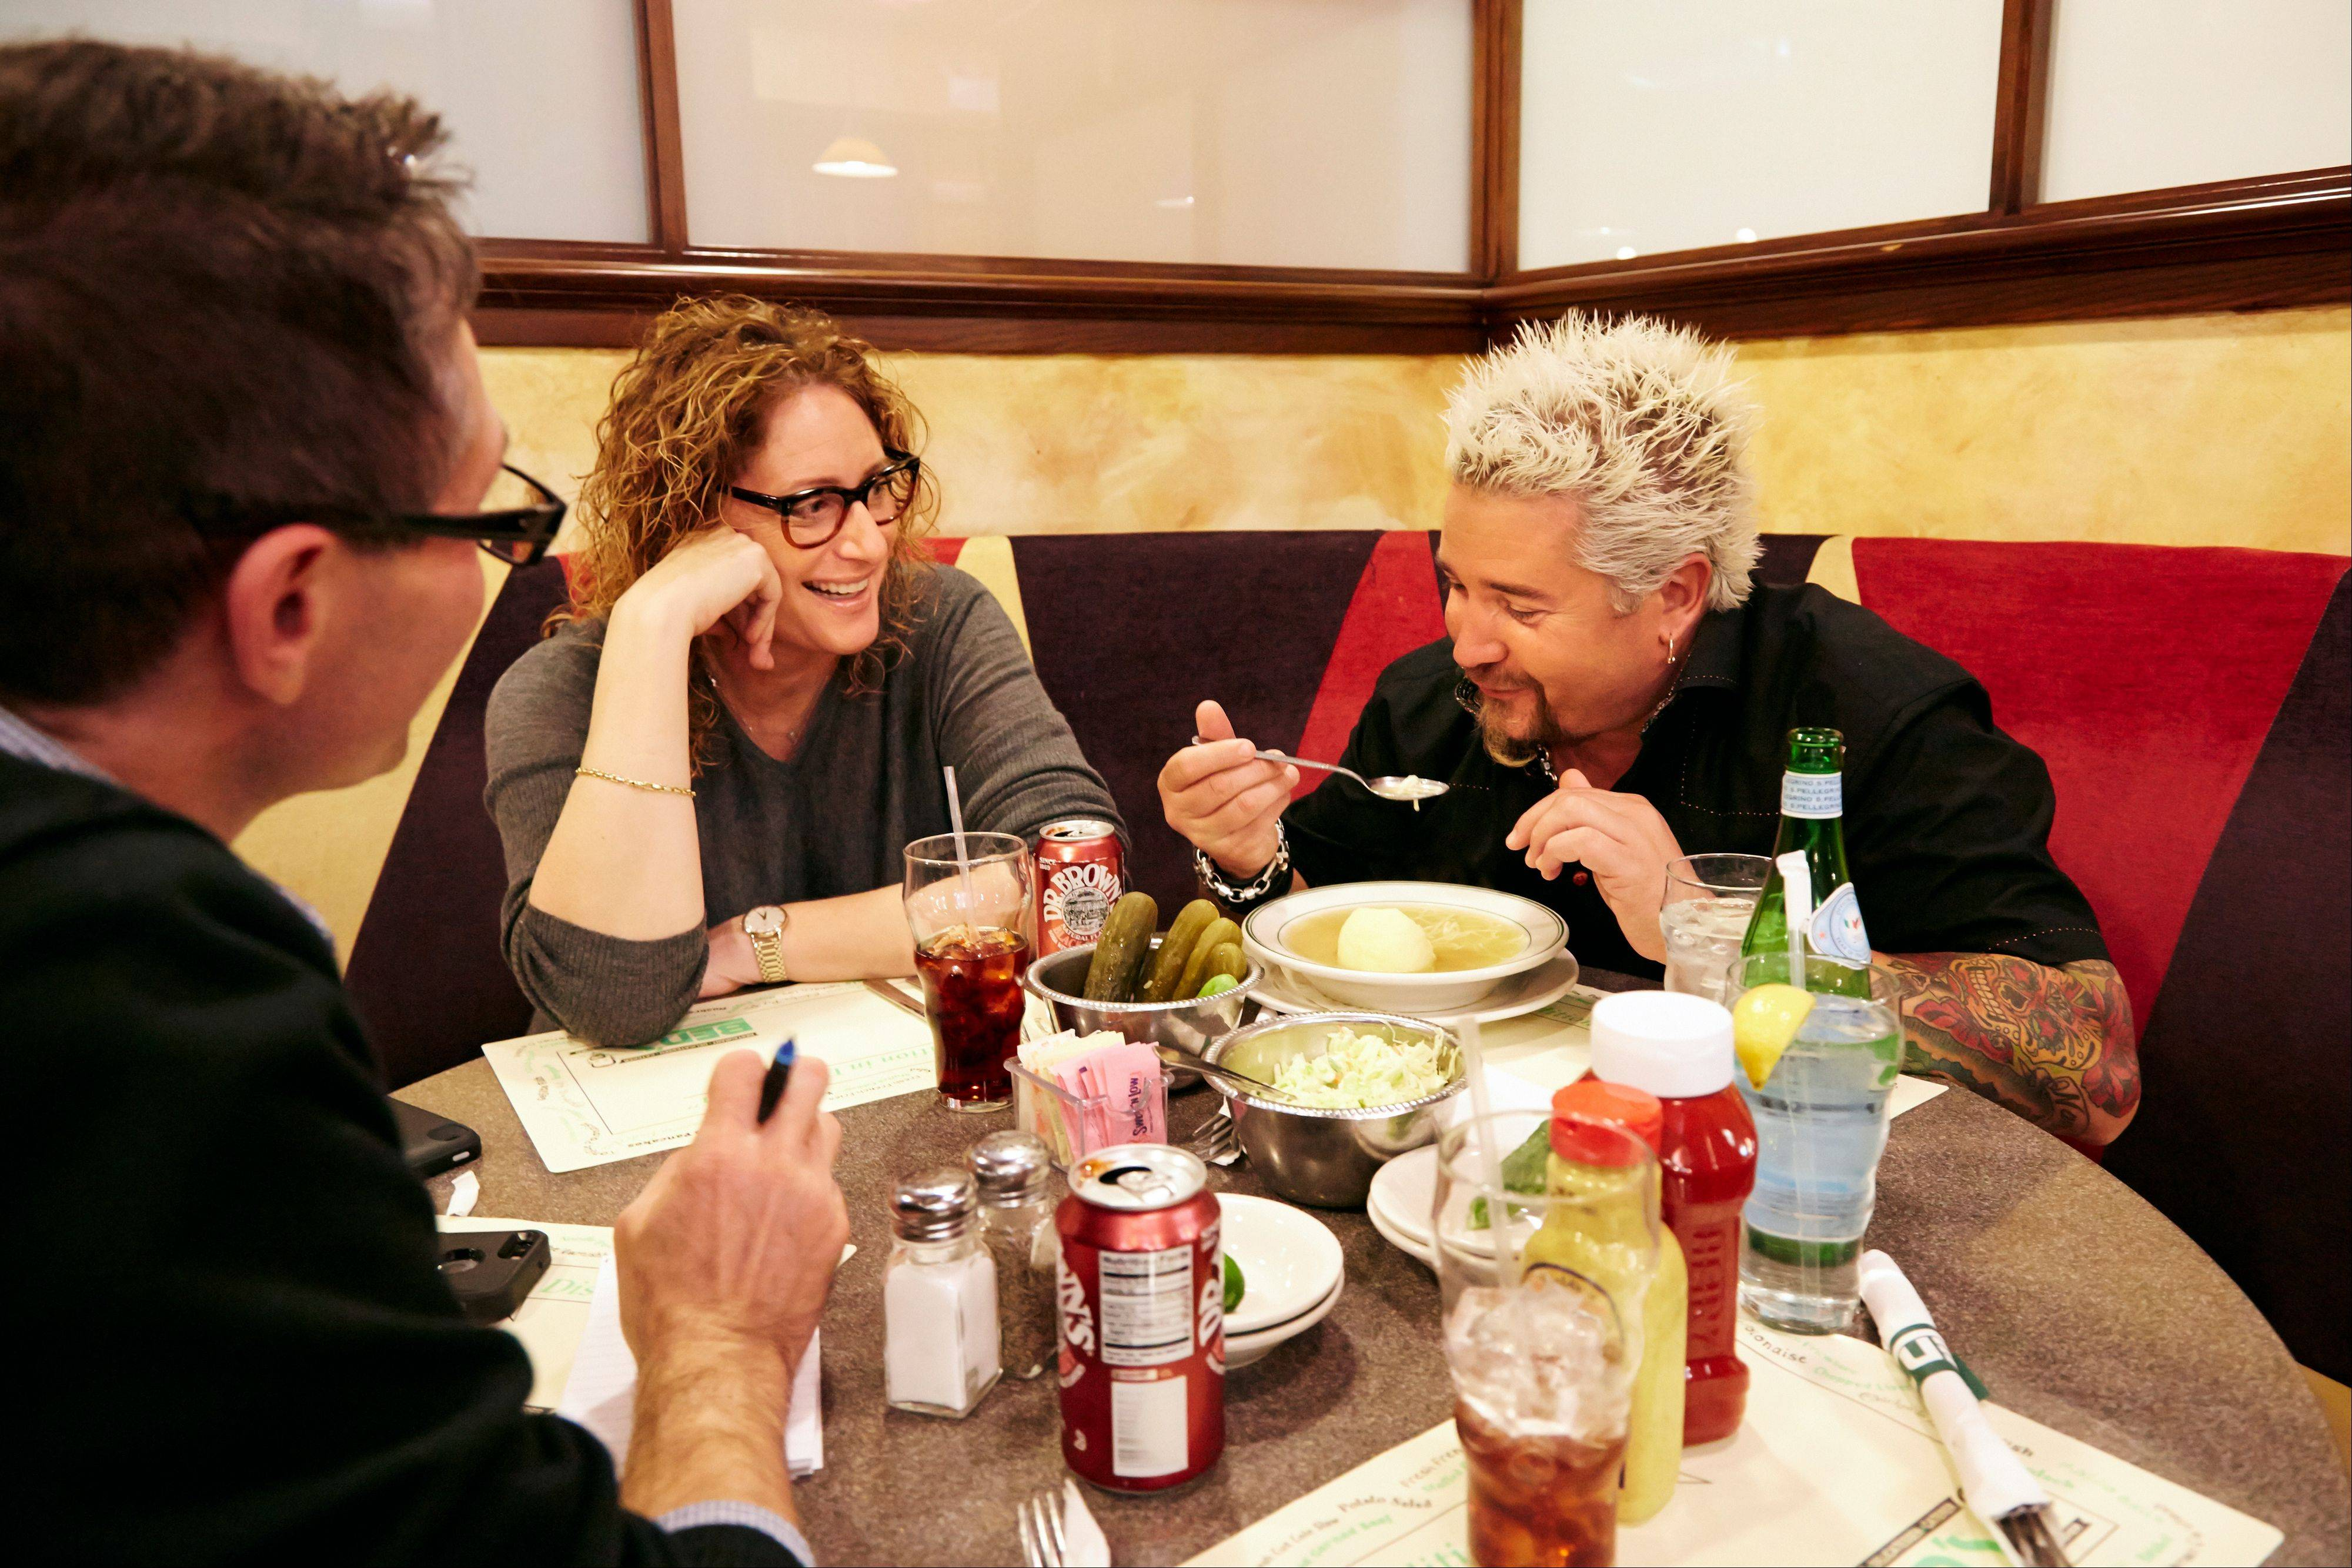 Food Network star Guy Fieri, right, tastes matzo ball soup at Ben's Deli as comedian Judy Gold, center, and Associated Press food editor J.M Hirsh joined the pair on a tour of premier places to get Super Bowl grub in New York.